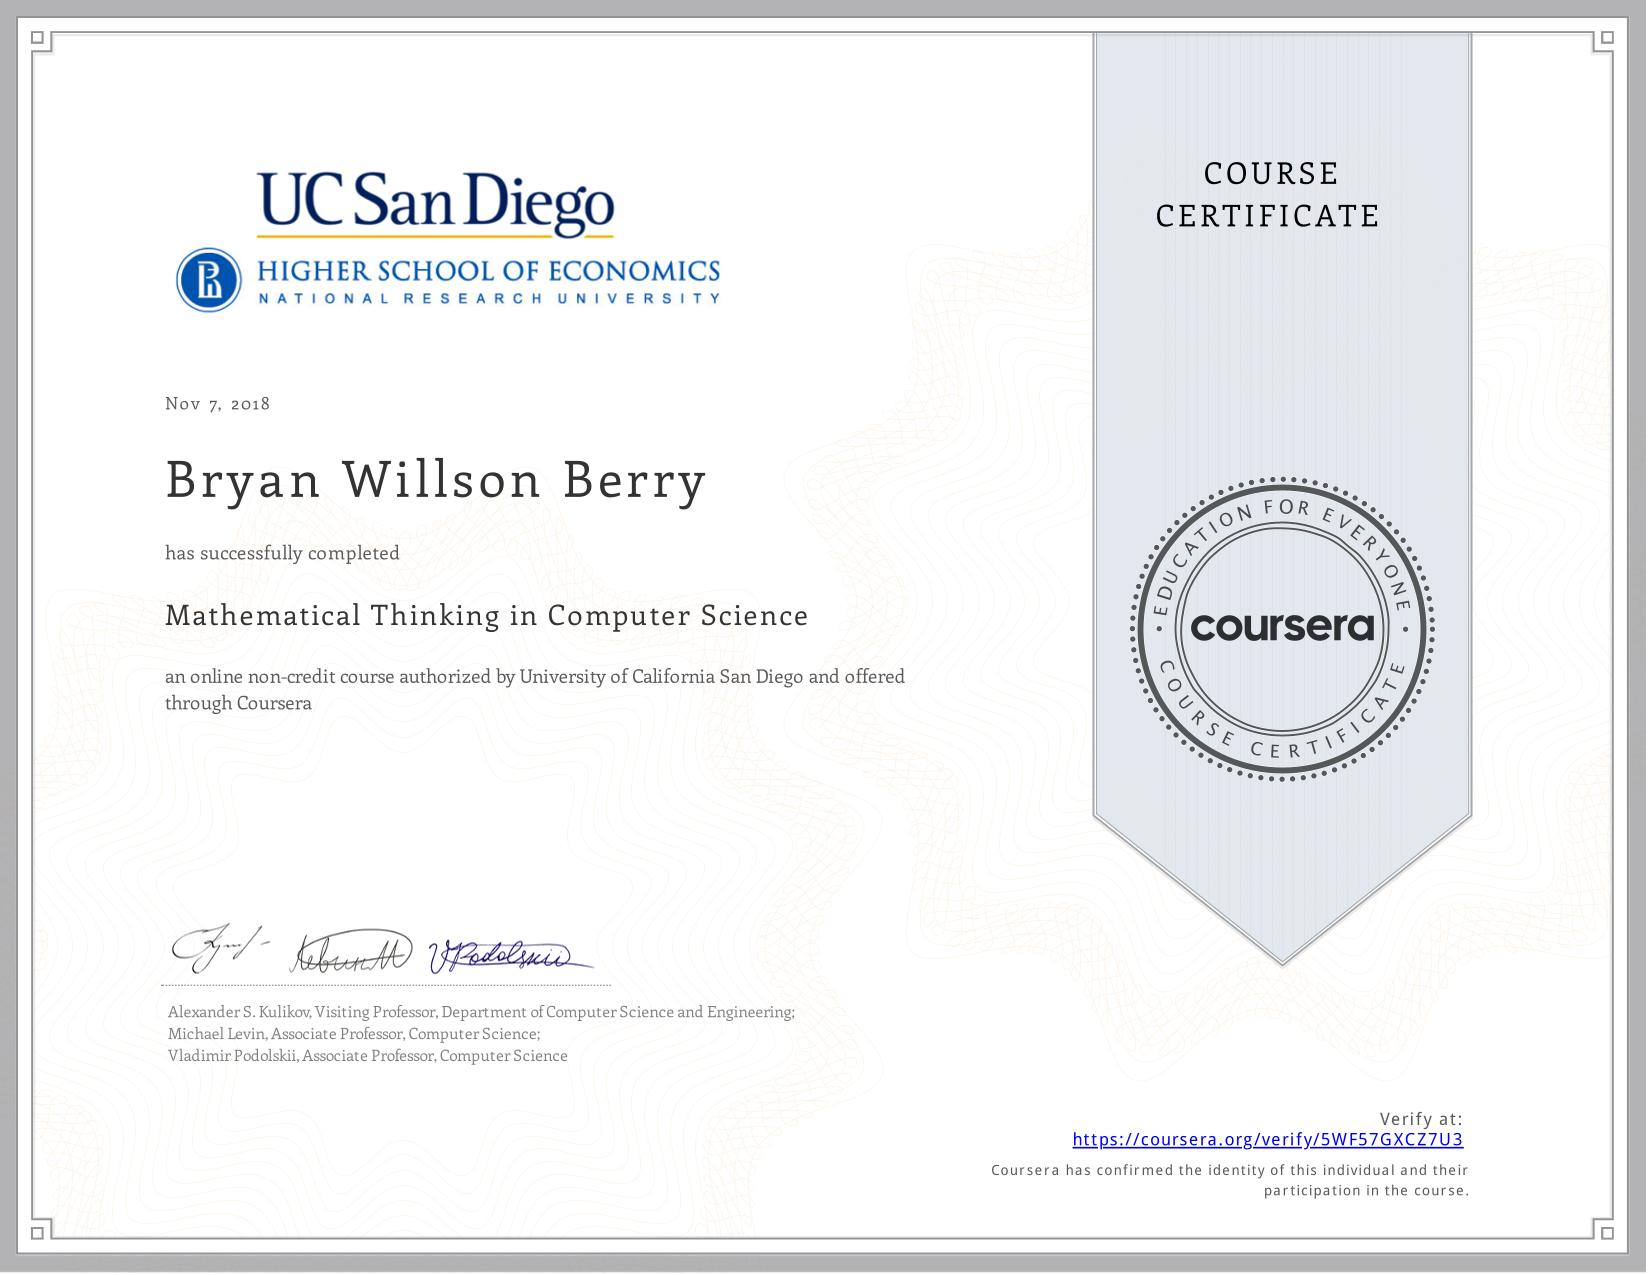 View certificate for Bryan Willson Berry, Mathematical Thinking in Computer Science, an online non-credit course authorized by University of California San Diego & National Research University Higher School of Economics and offered through Coursera